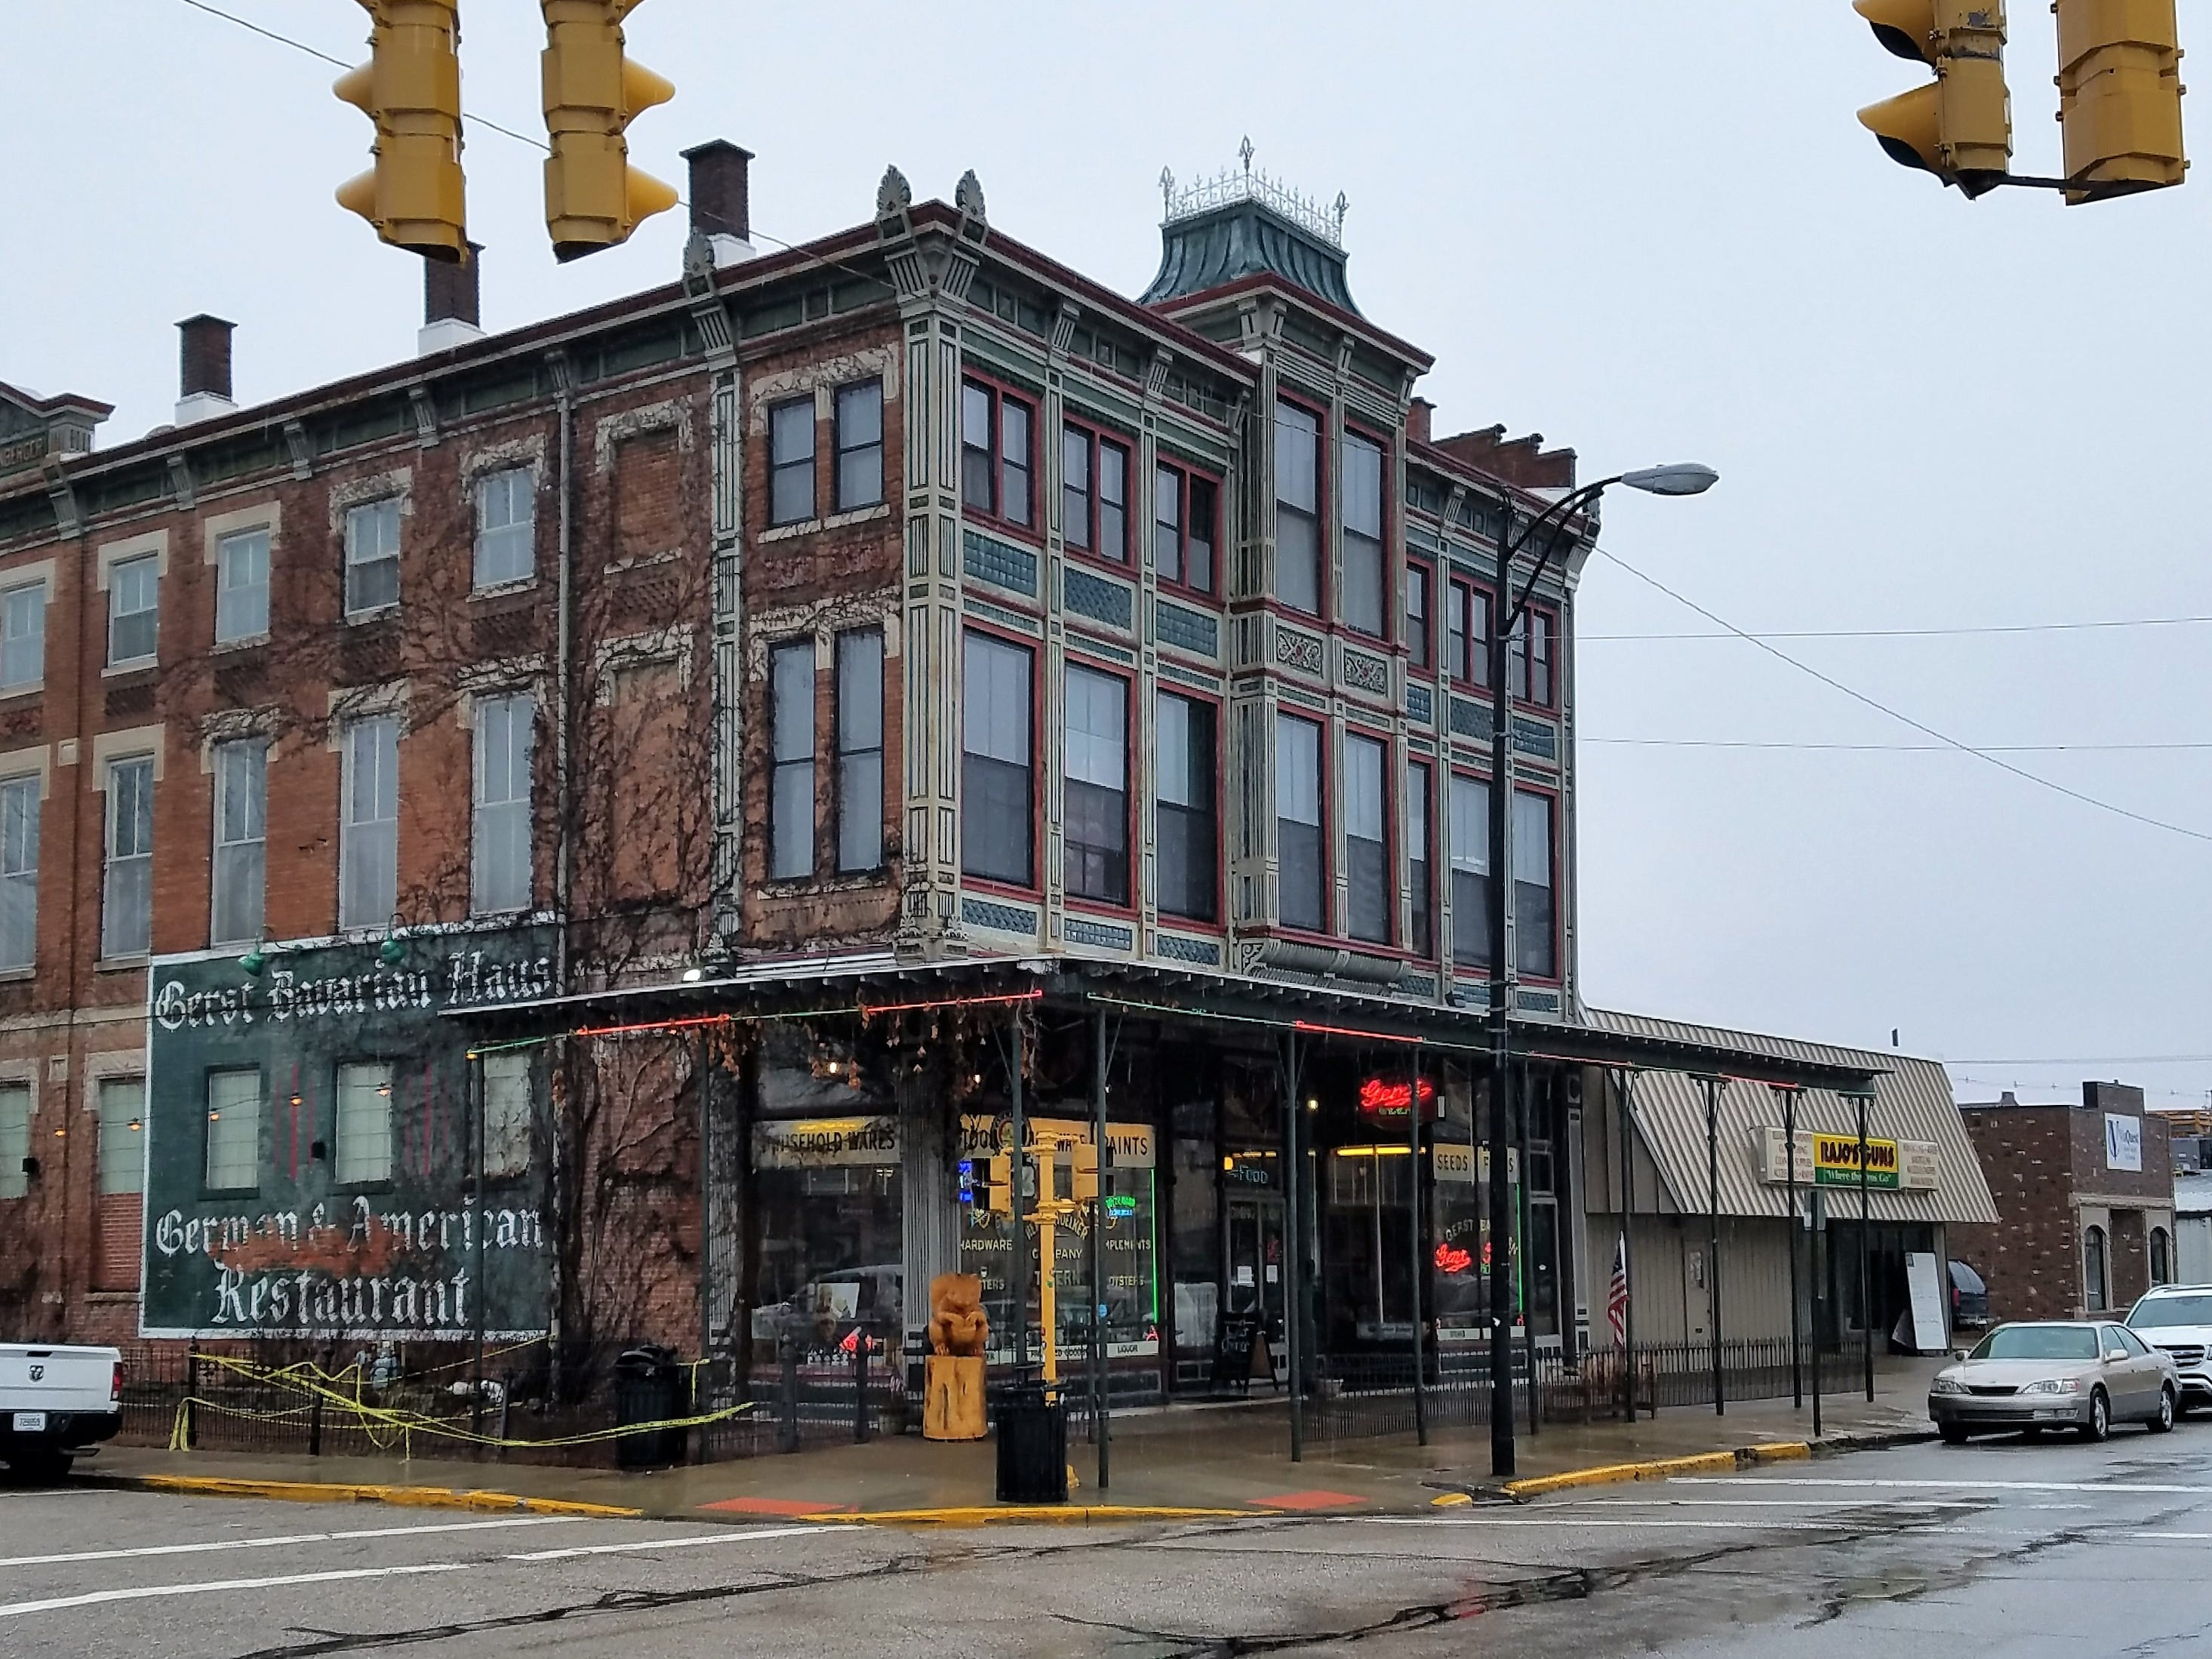 The historic Gerst Haus is located on West Franklin Street.